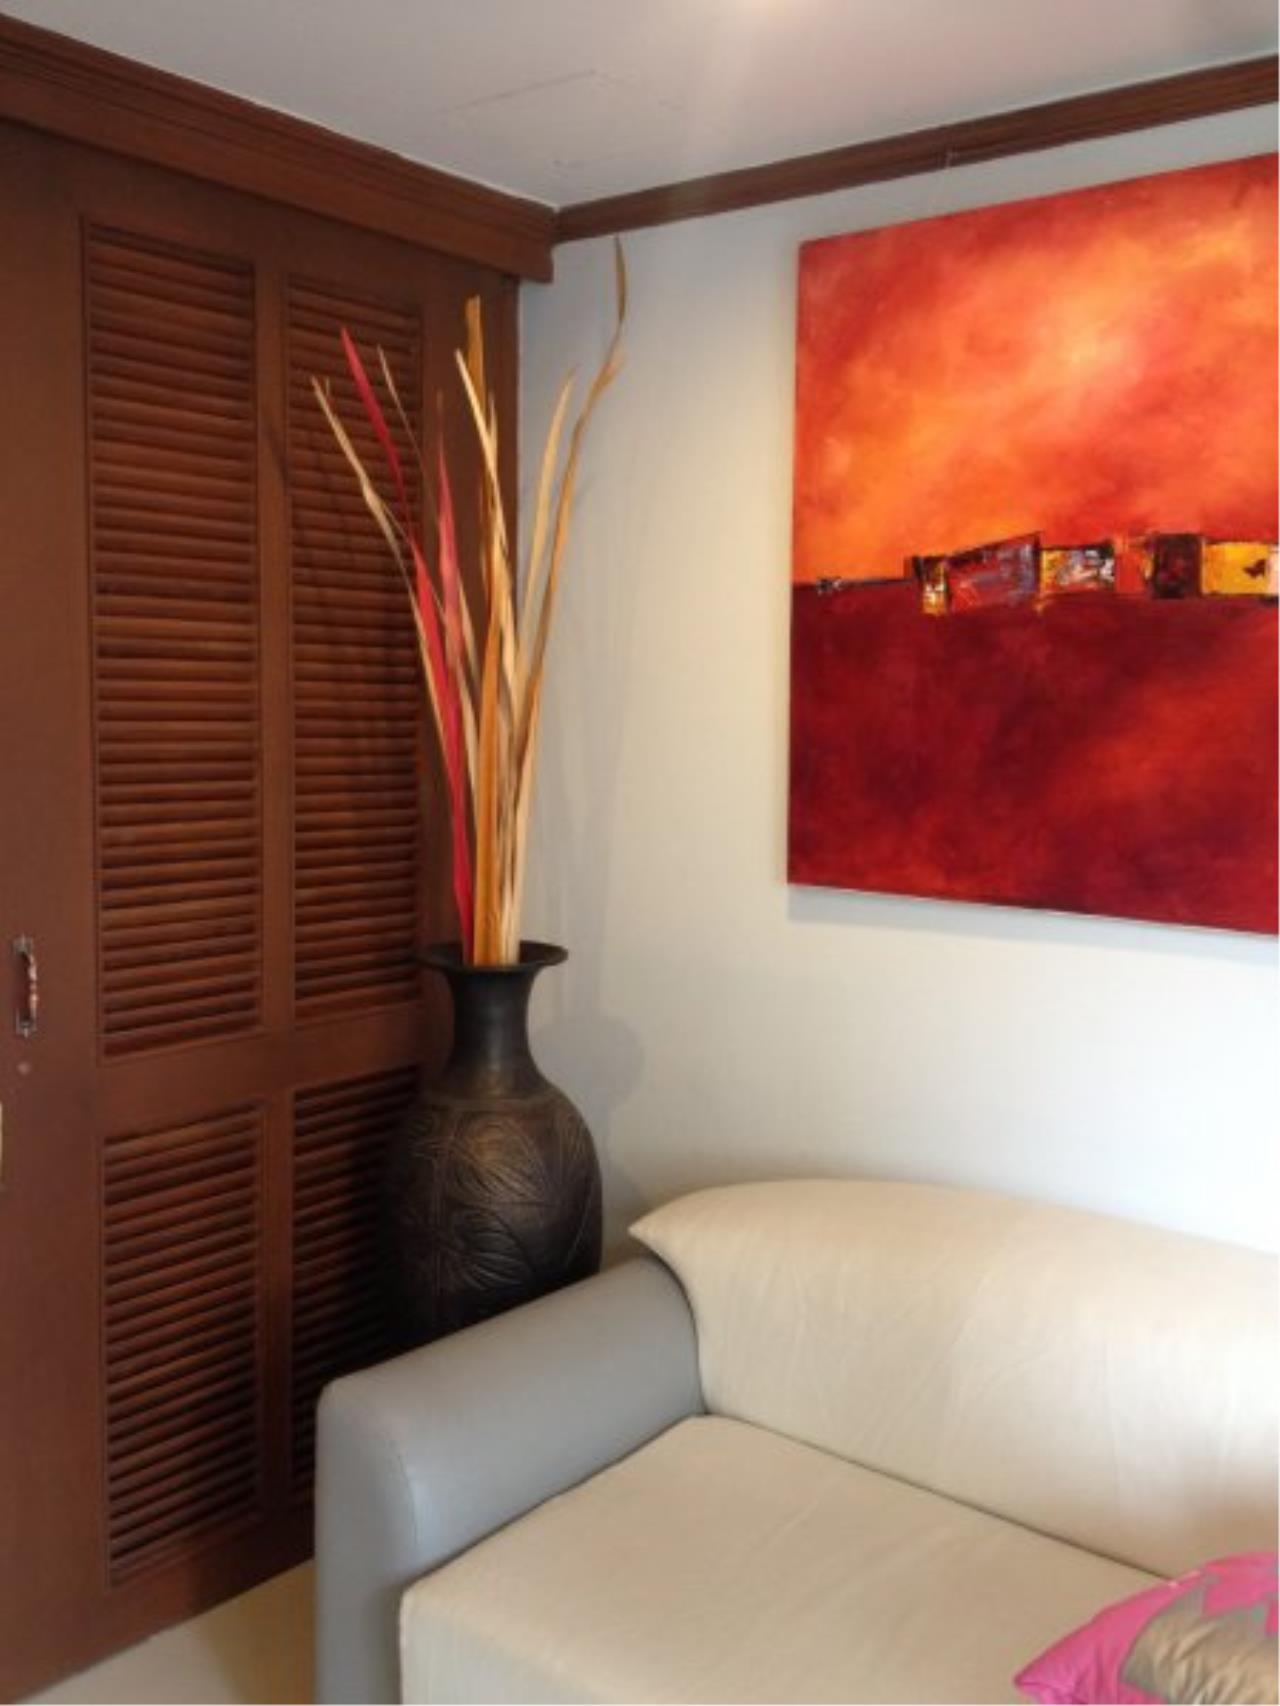 Piri Property Agency's 1 Bedroom Condo for Rent on Low Floor 8